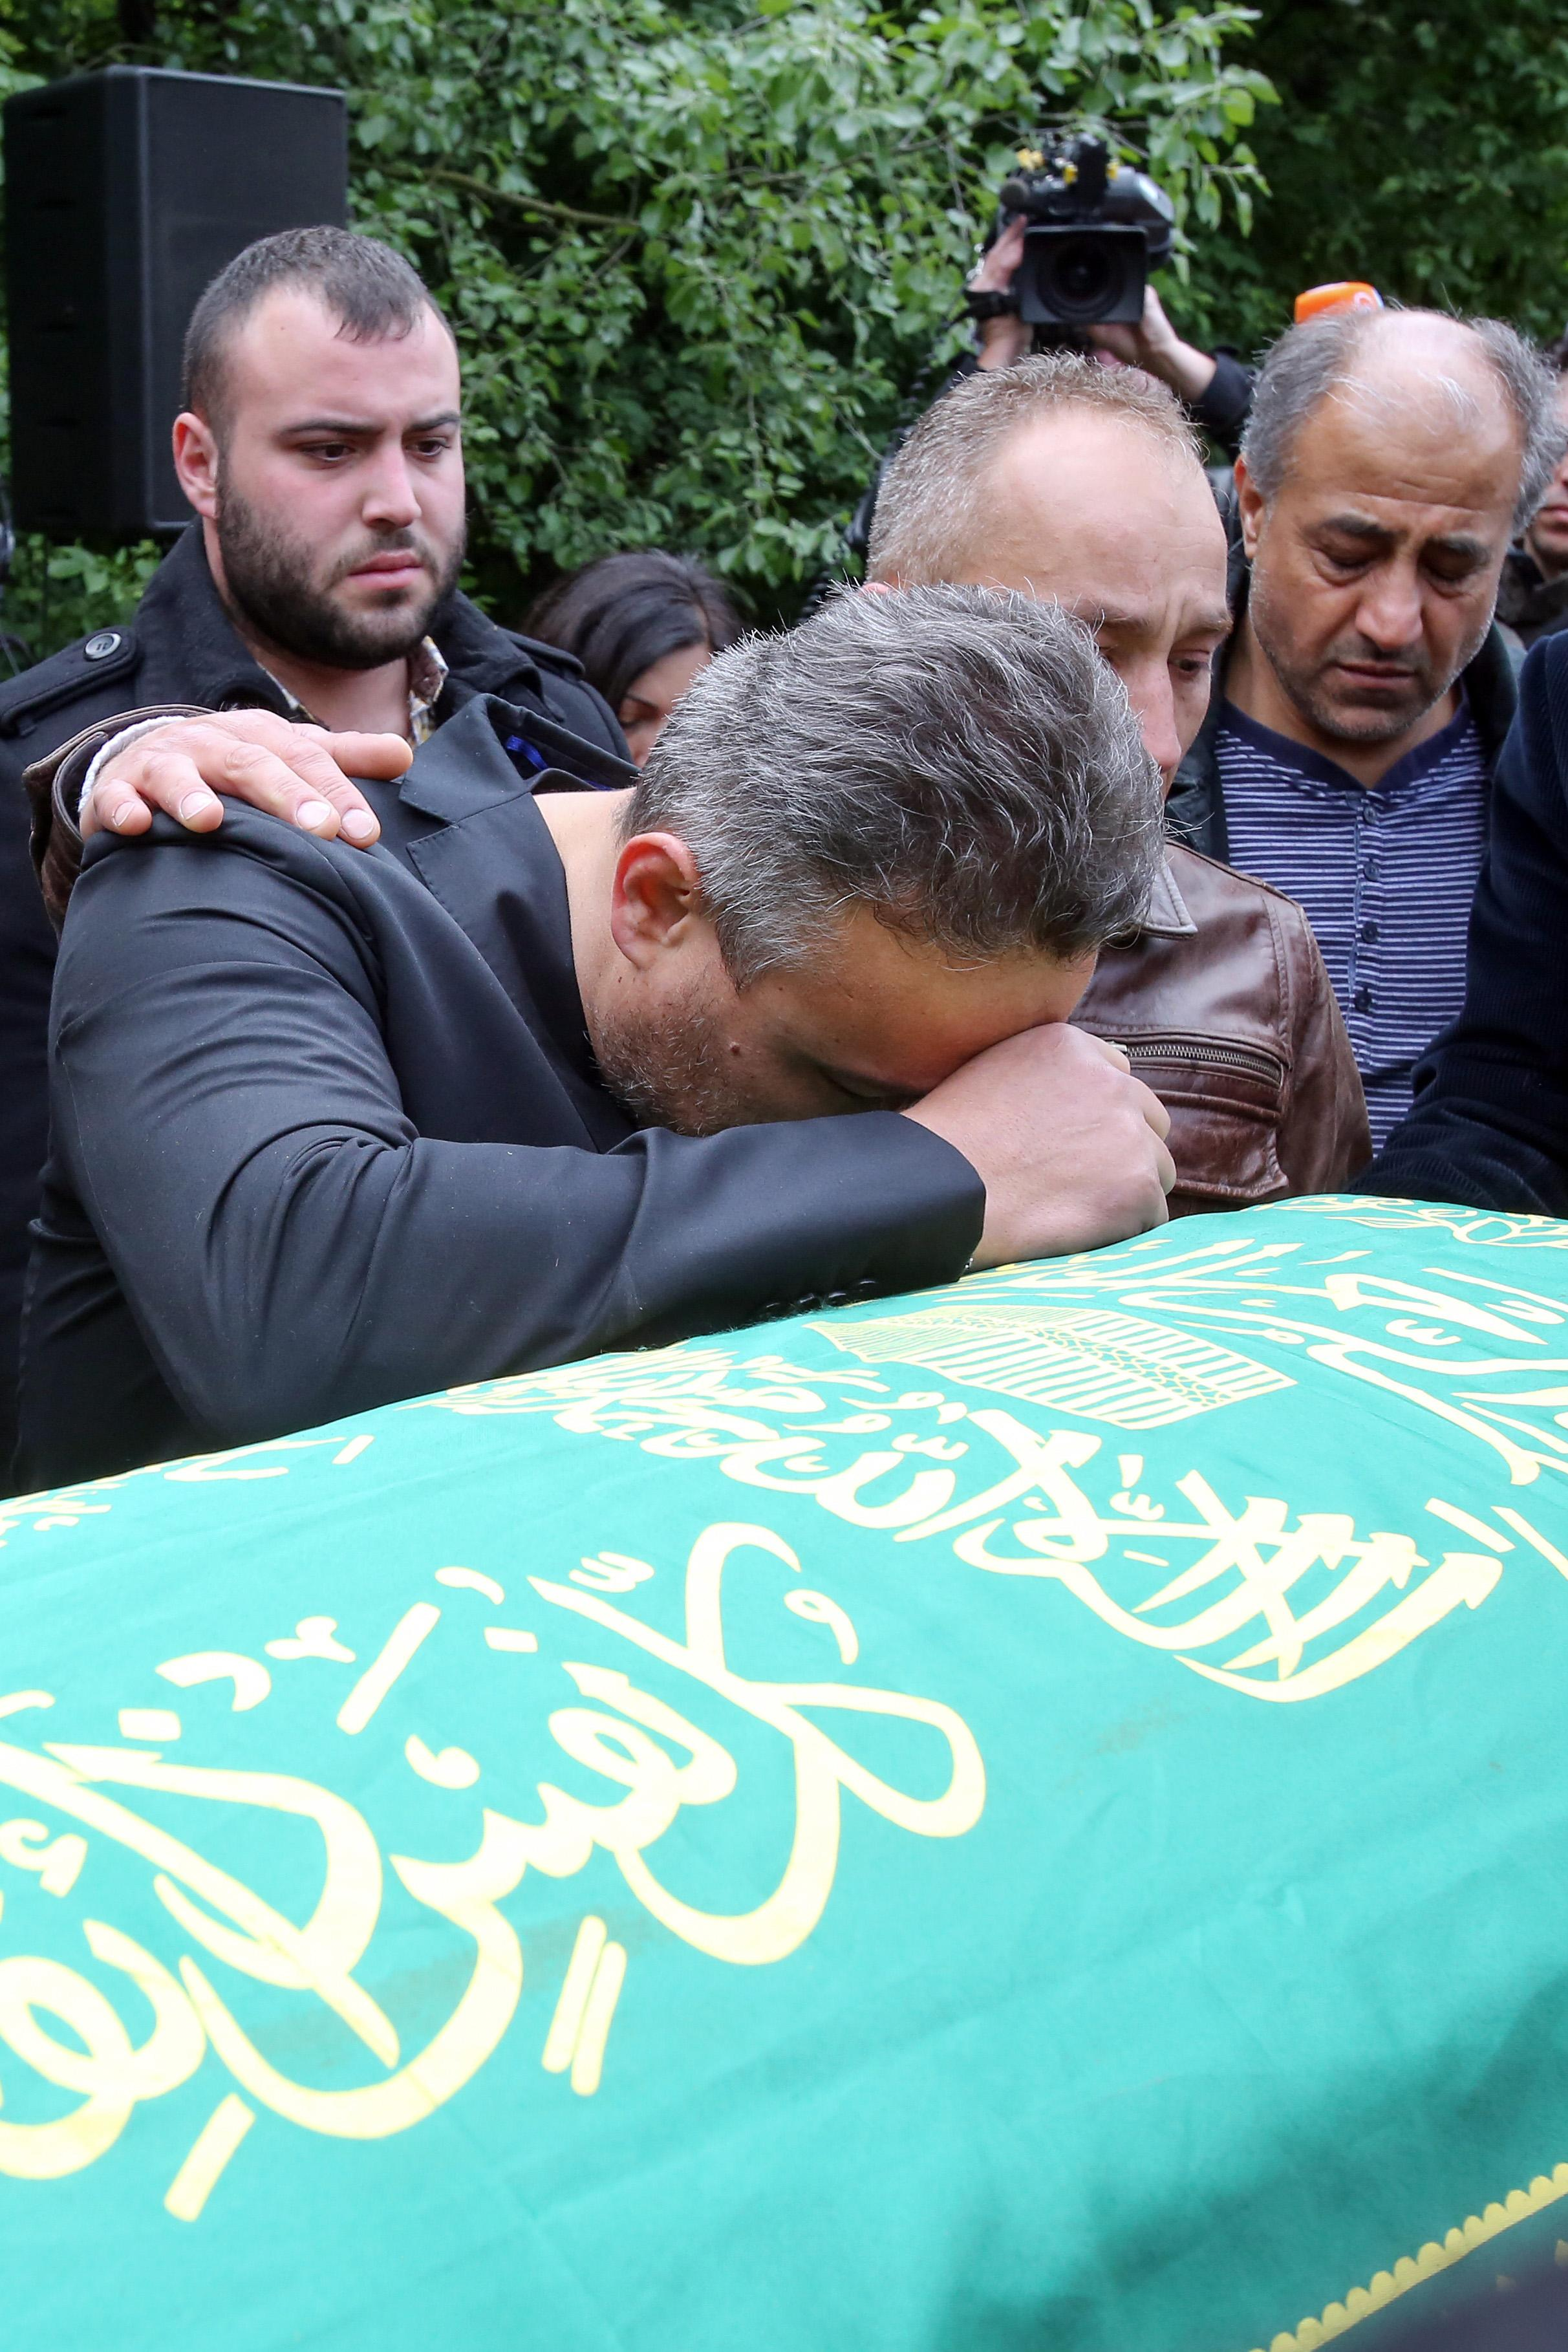 Celal Dede, front, mourns at the coffin of his son Diren during a funeral service in Hamburg, Germany, Sunday, May 4, 2014. More than 500 people were attending a memorial service for the 17-year-old German exchange student who was shot dead a week ago in the United States. (AP Photo/dpa, Bodo Marks)